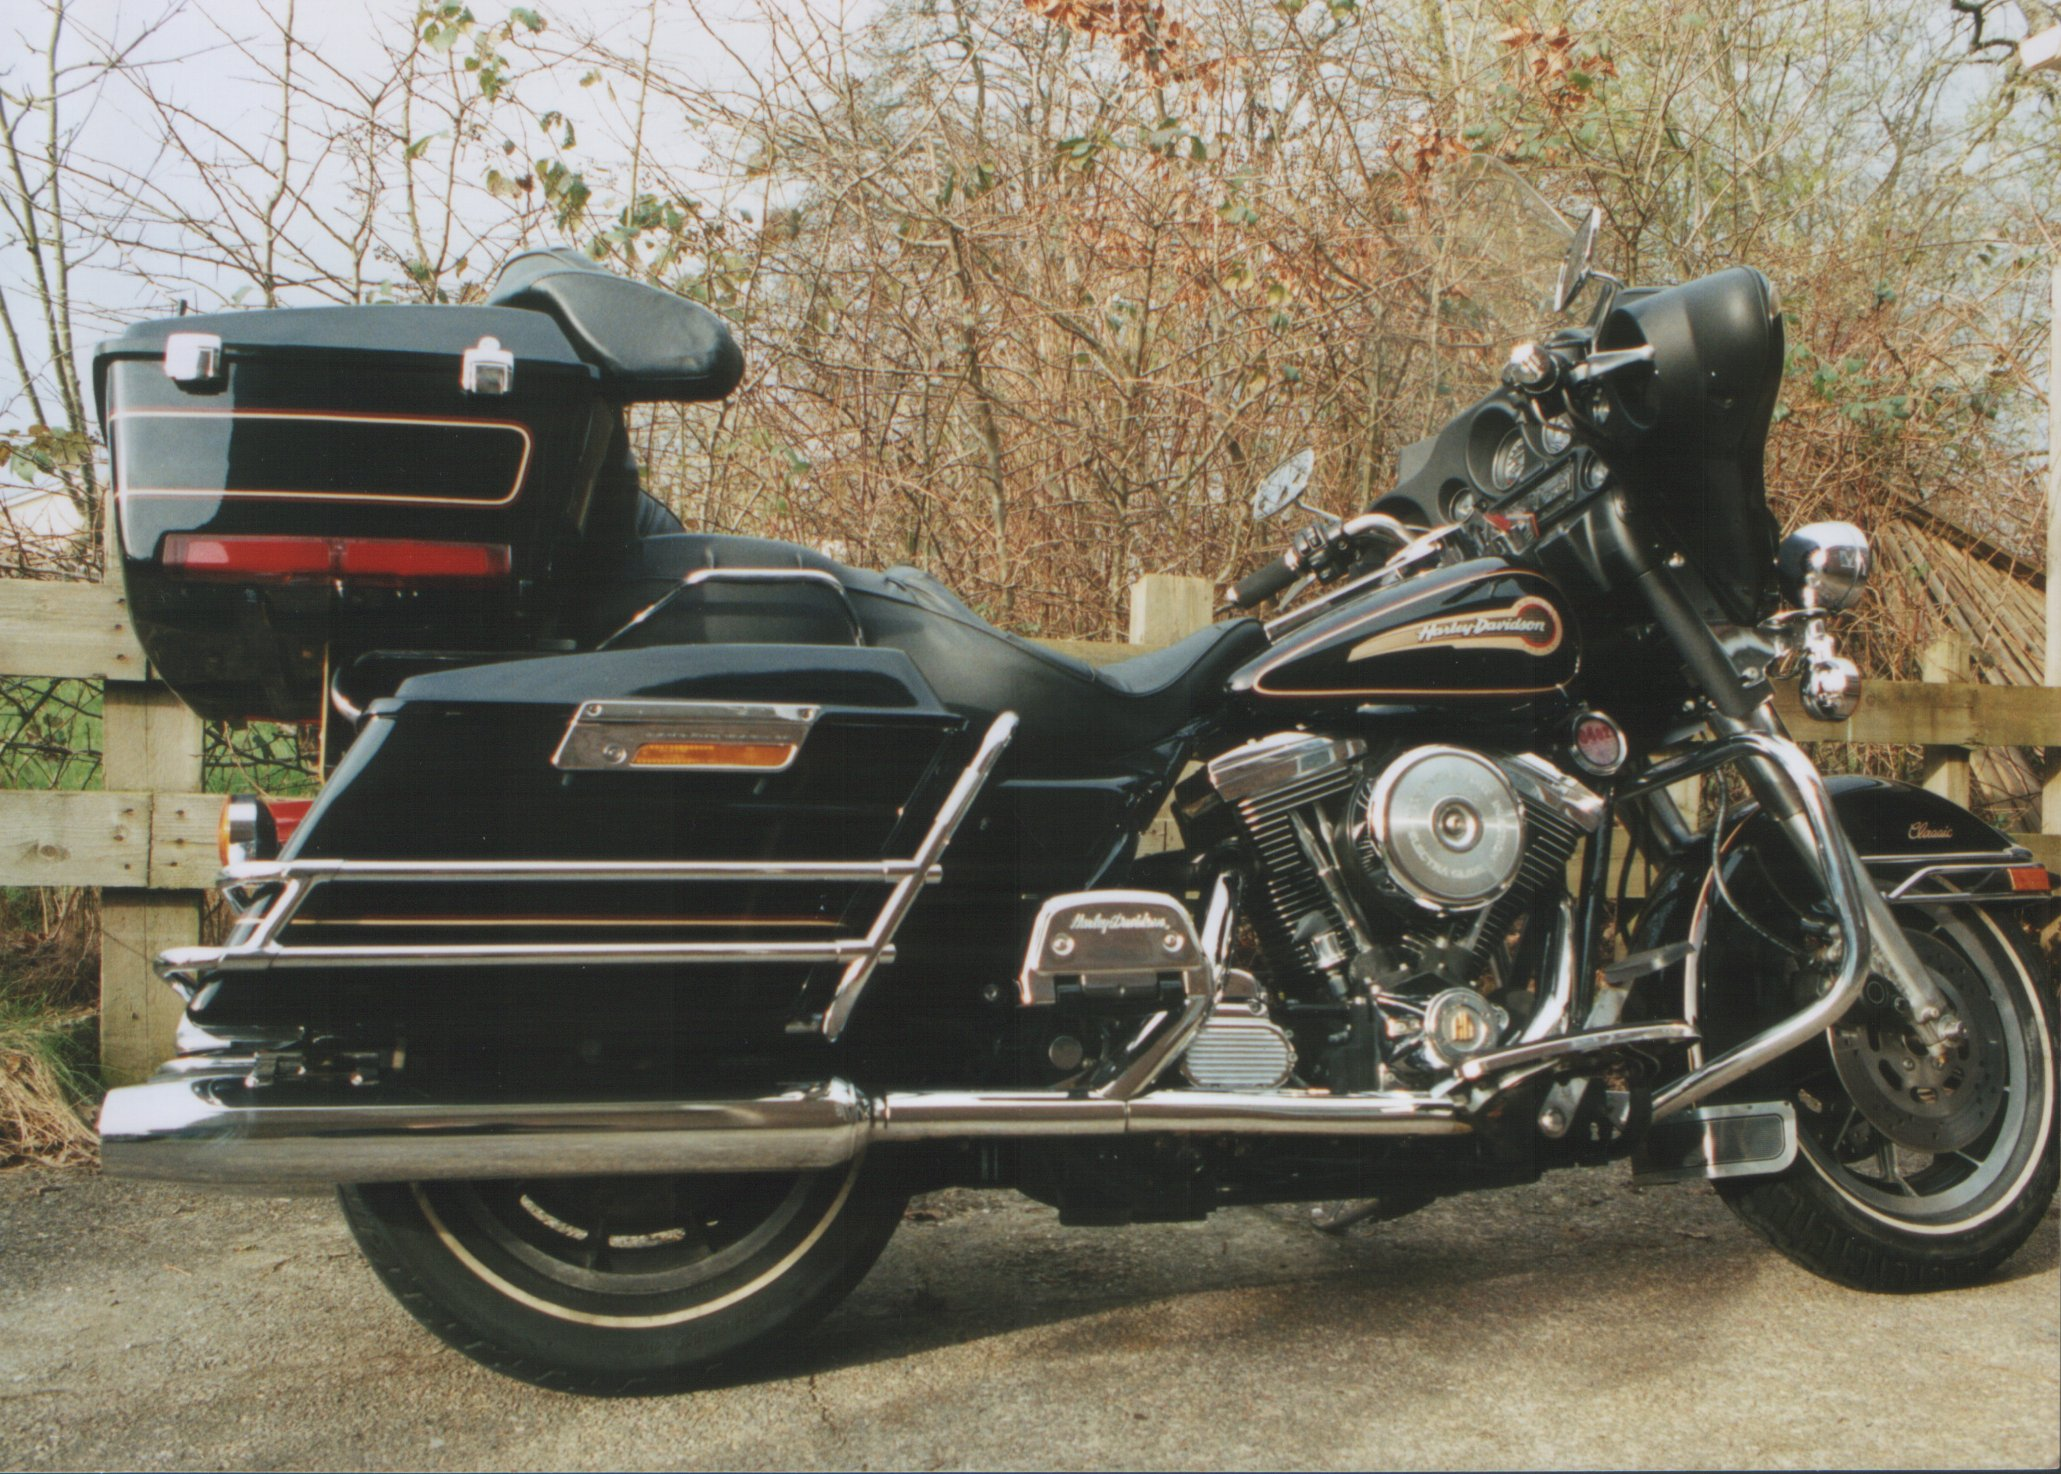 Harley-Davidson FLHTC Electra Glide Classic 2008 #7